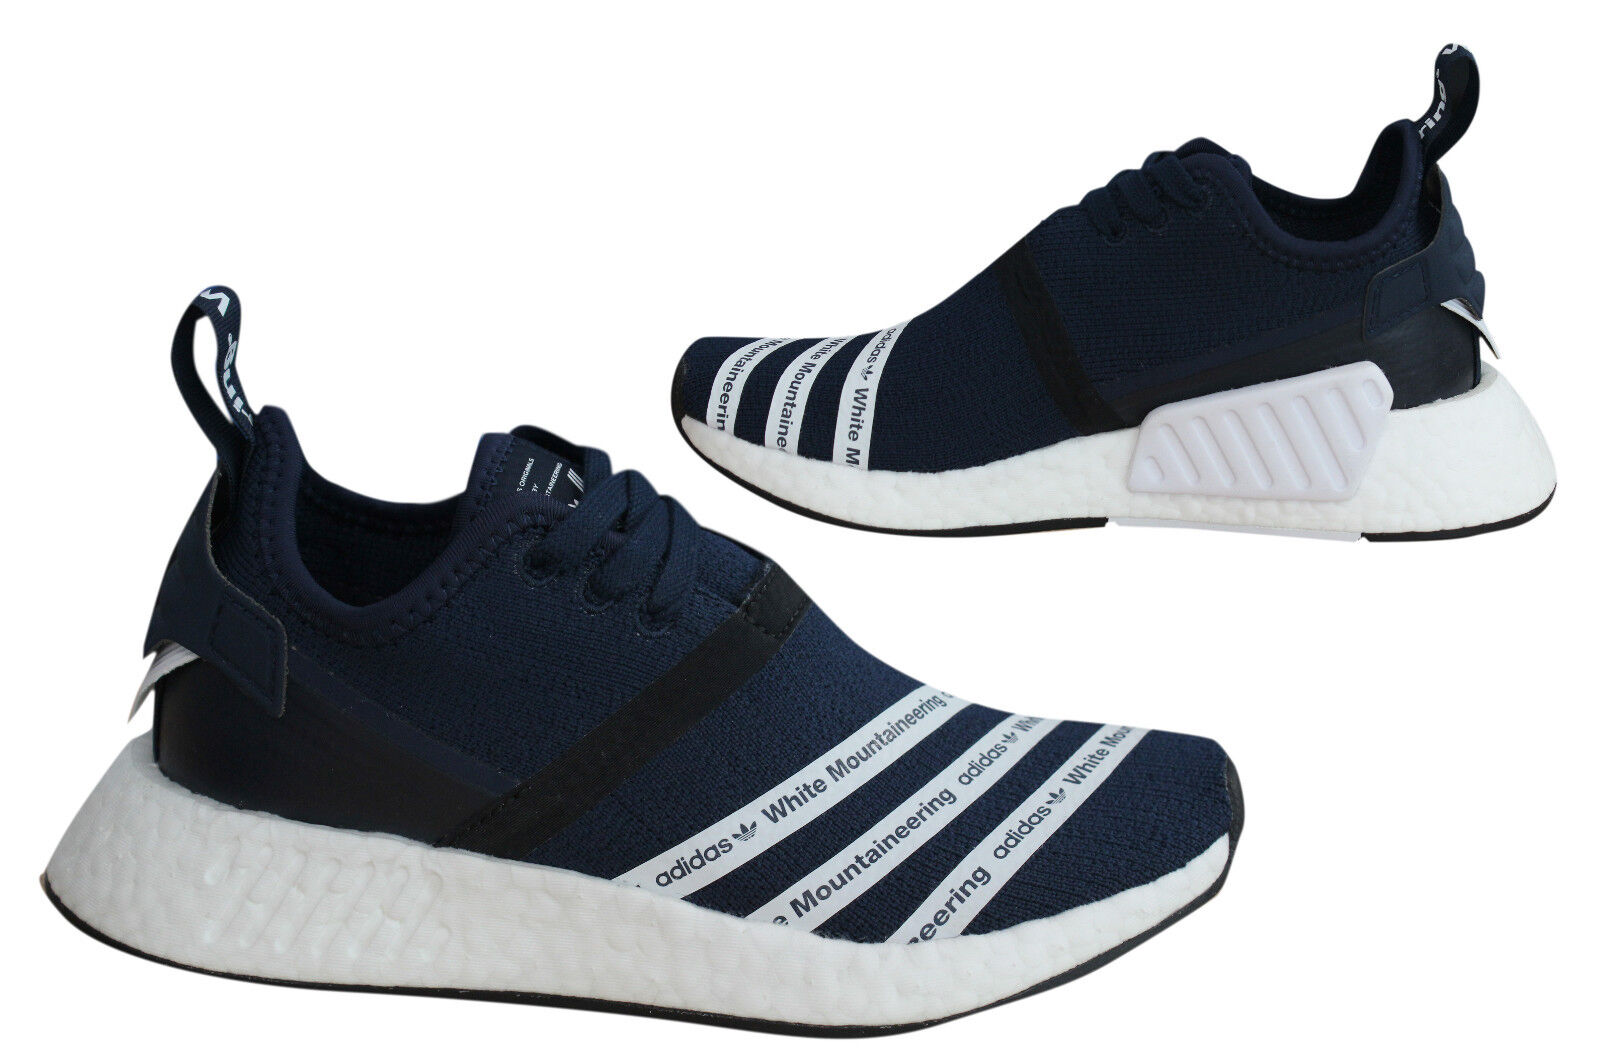 0a2f1463d Adidas Originals White Mountaineering NMD R2 Primeknit Mens Trainers ...